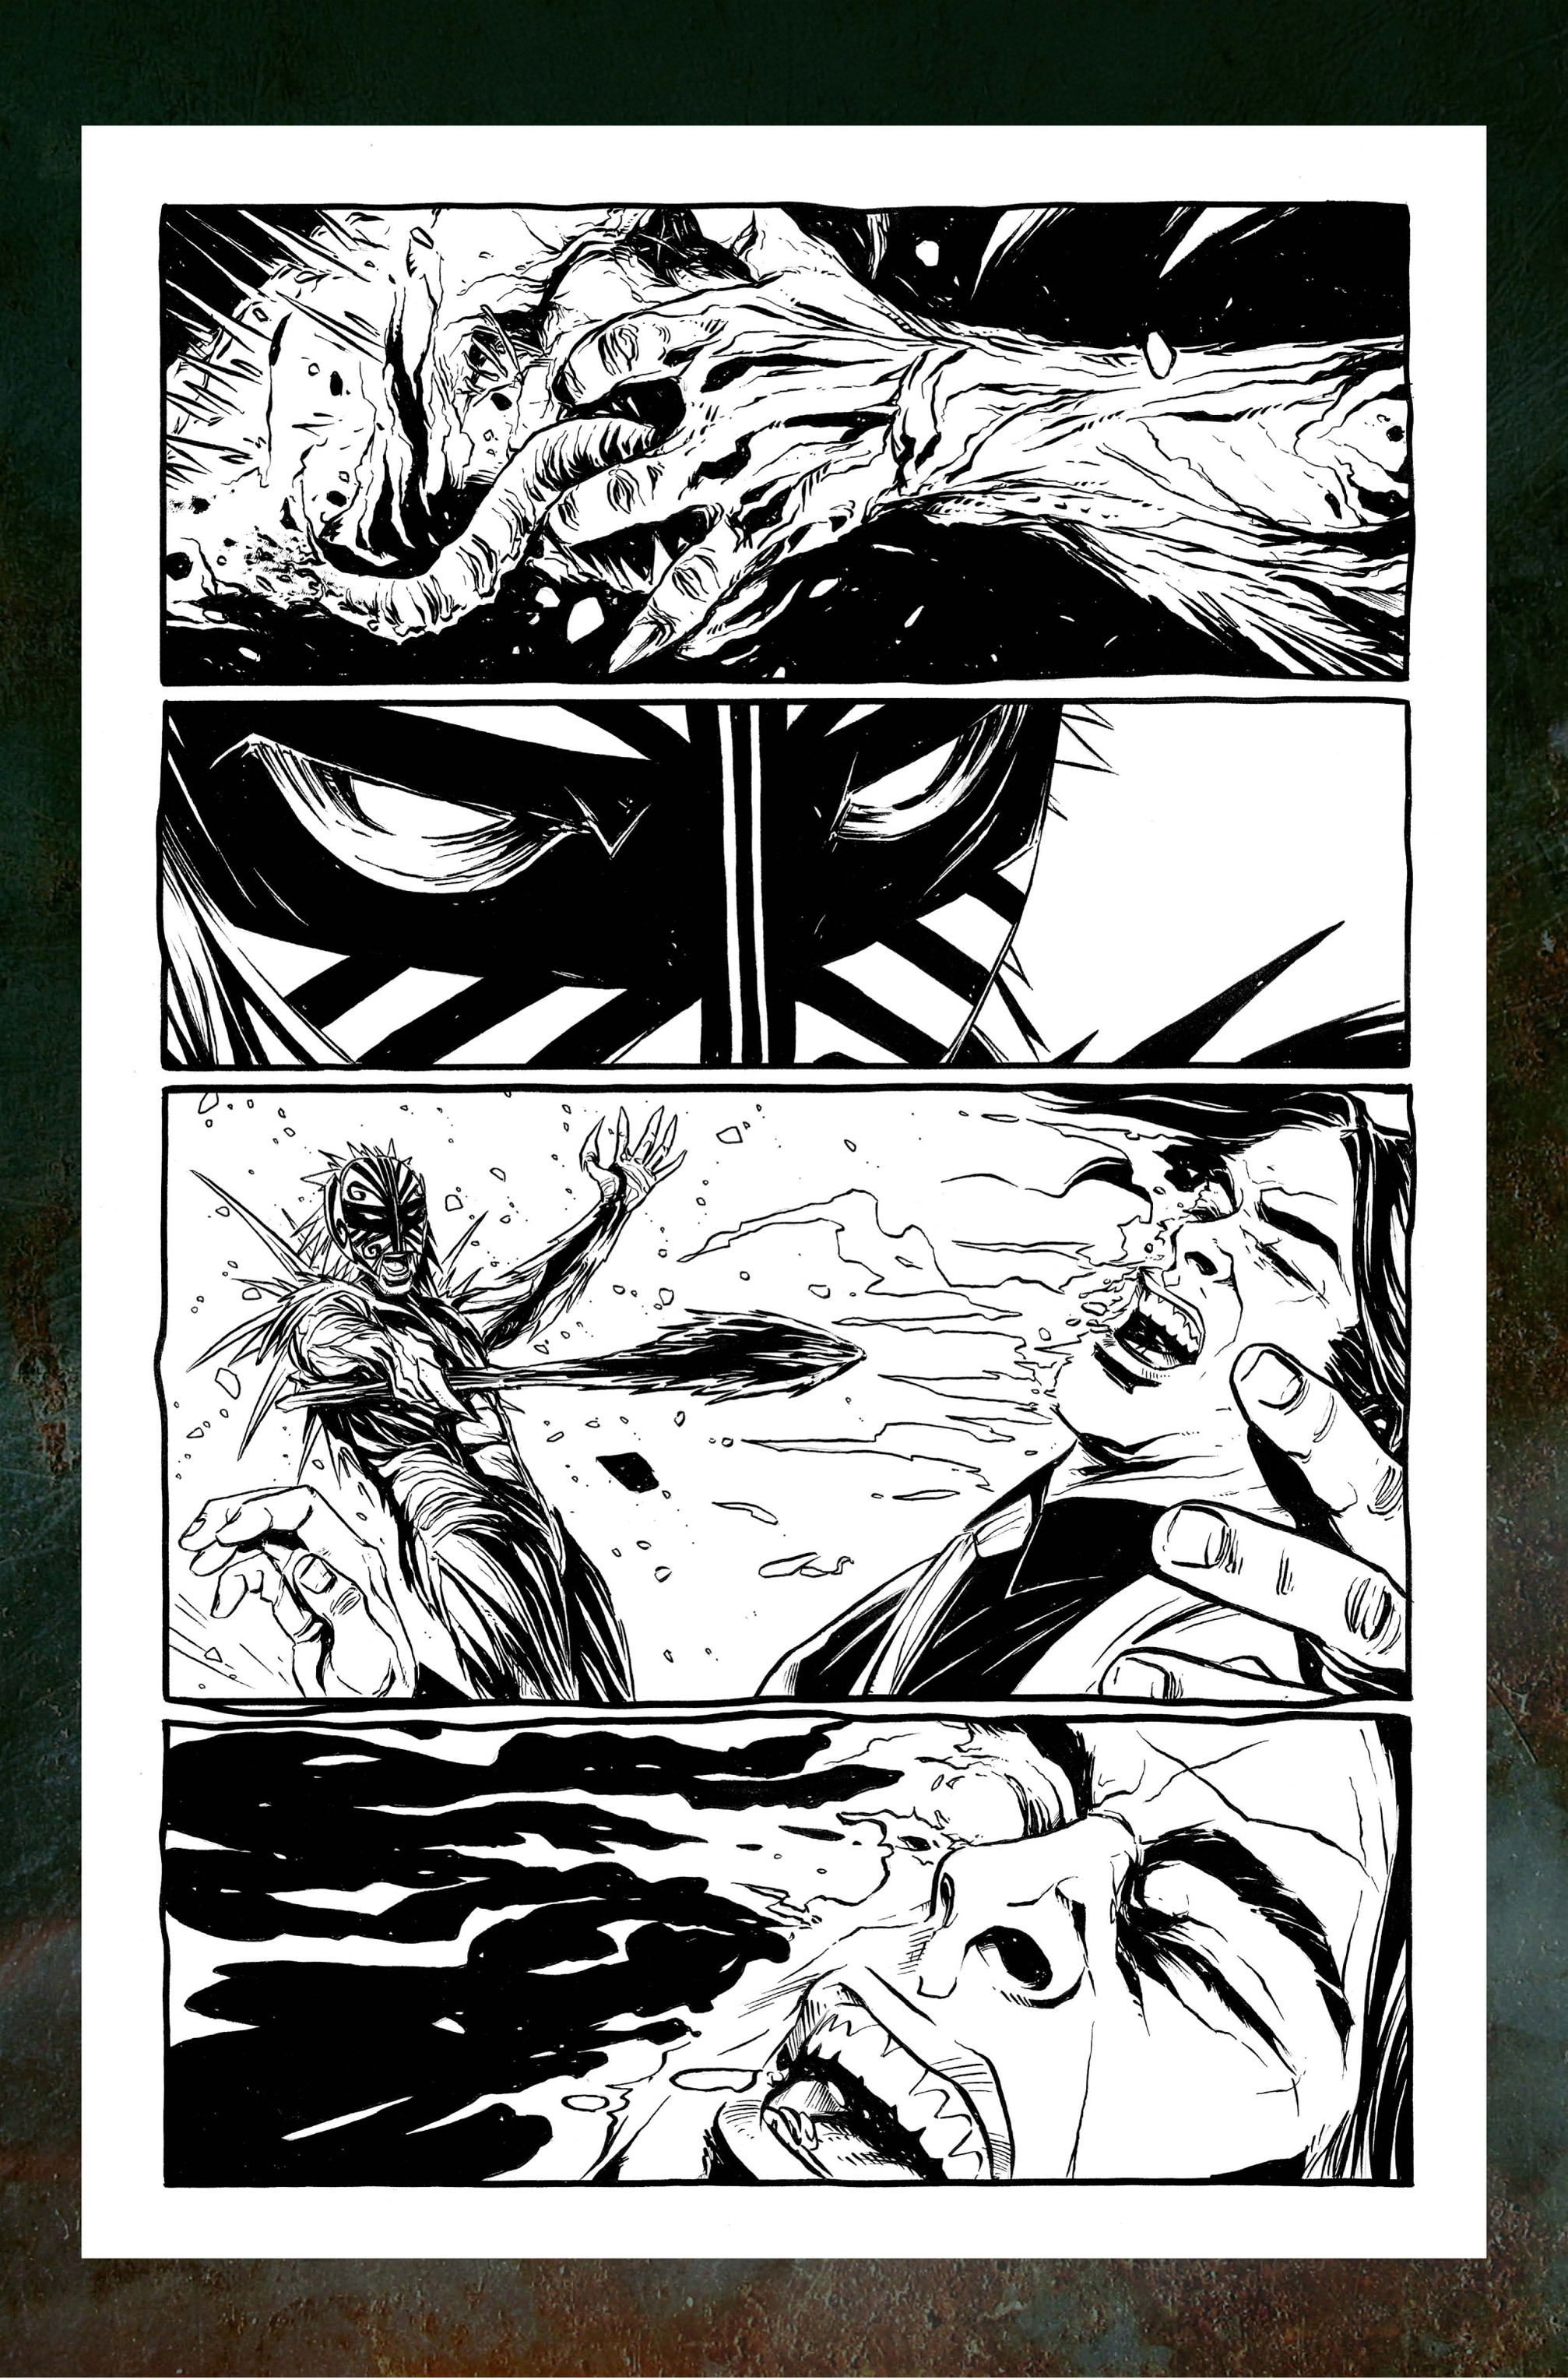 The Darkness (2007) chap 115 pic 37